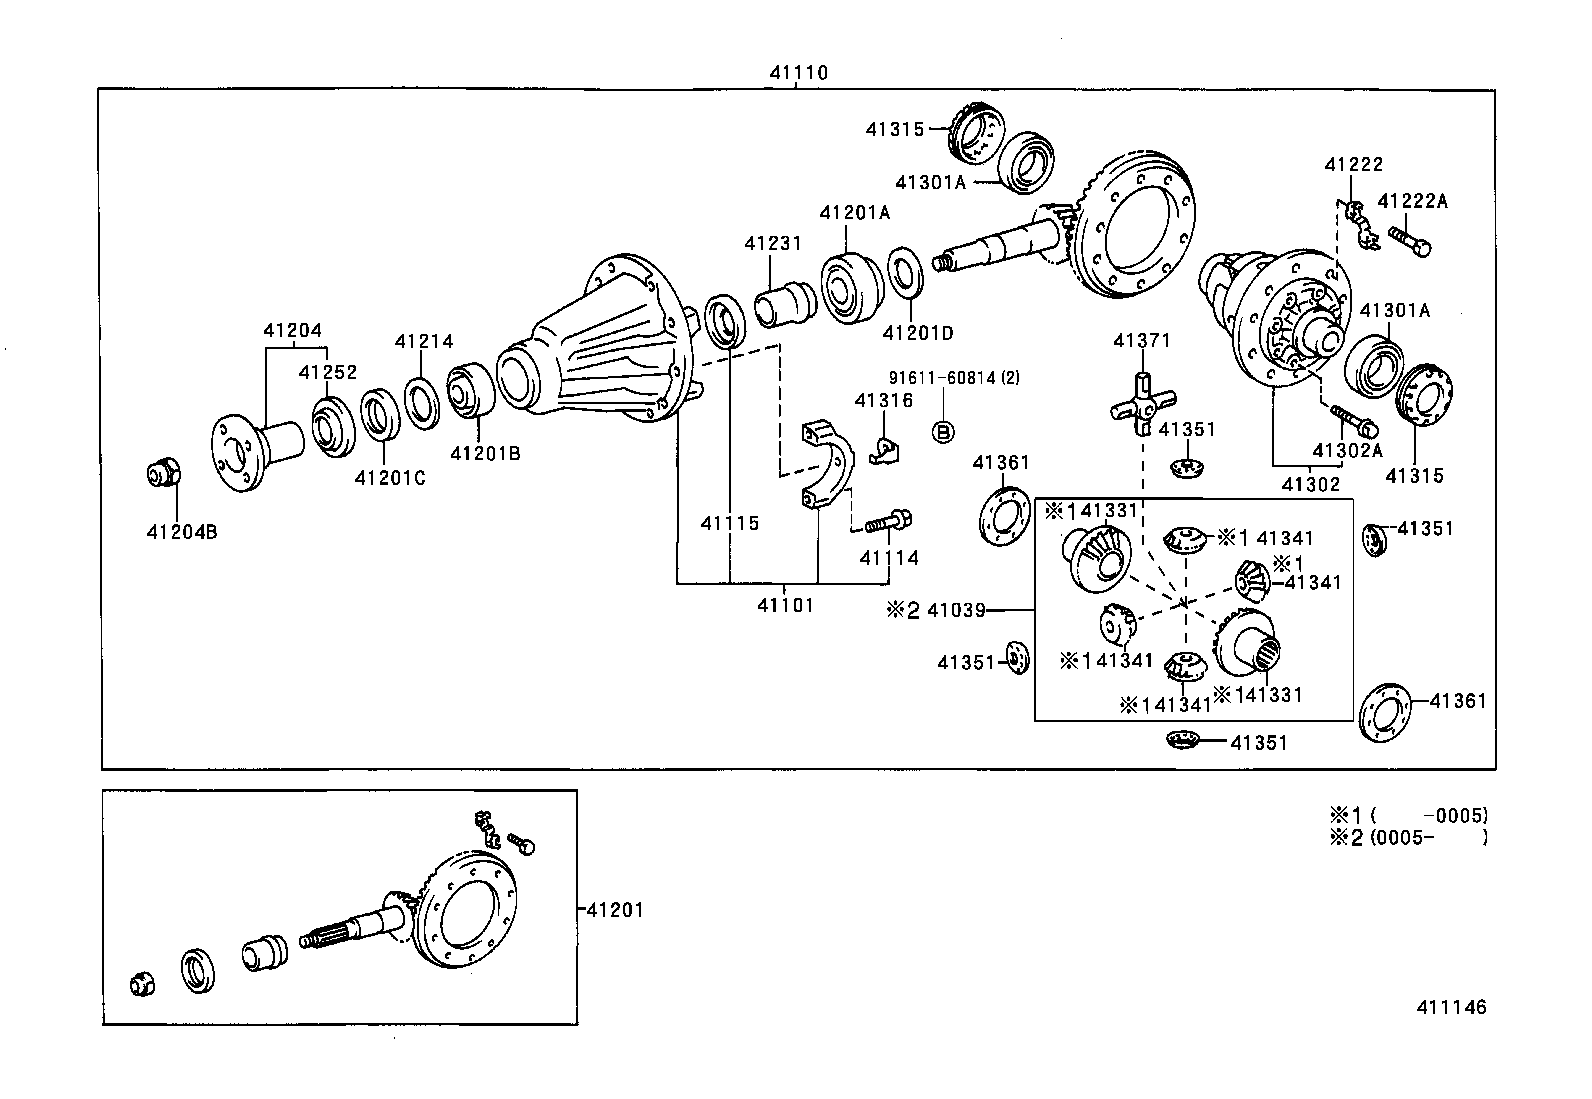 Chevy S10 Rear Axle Diagram